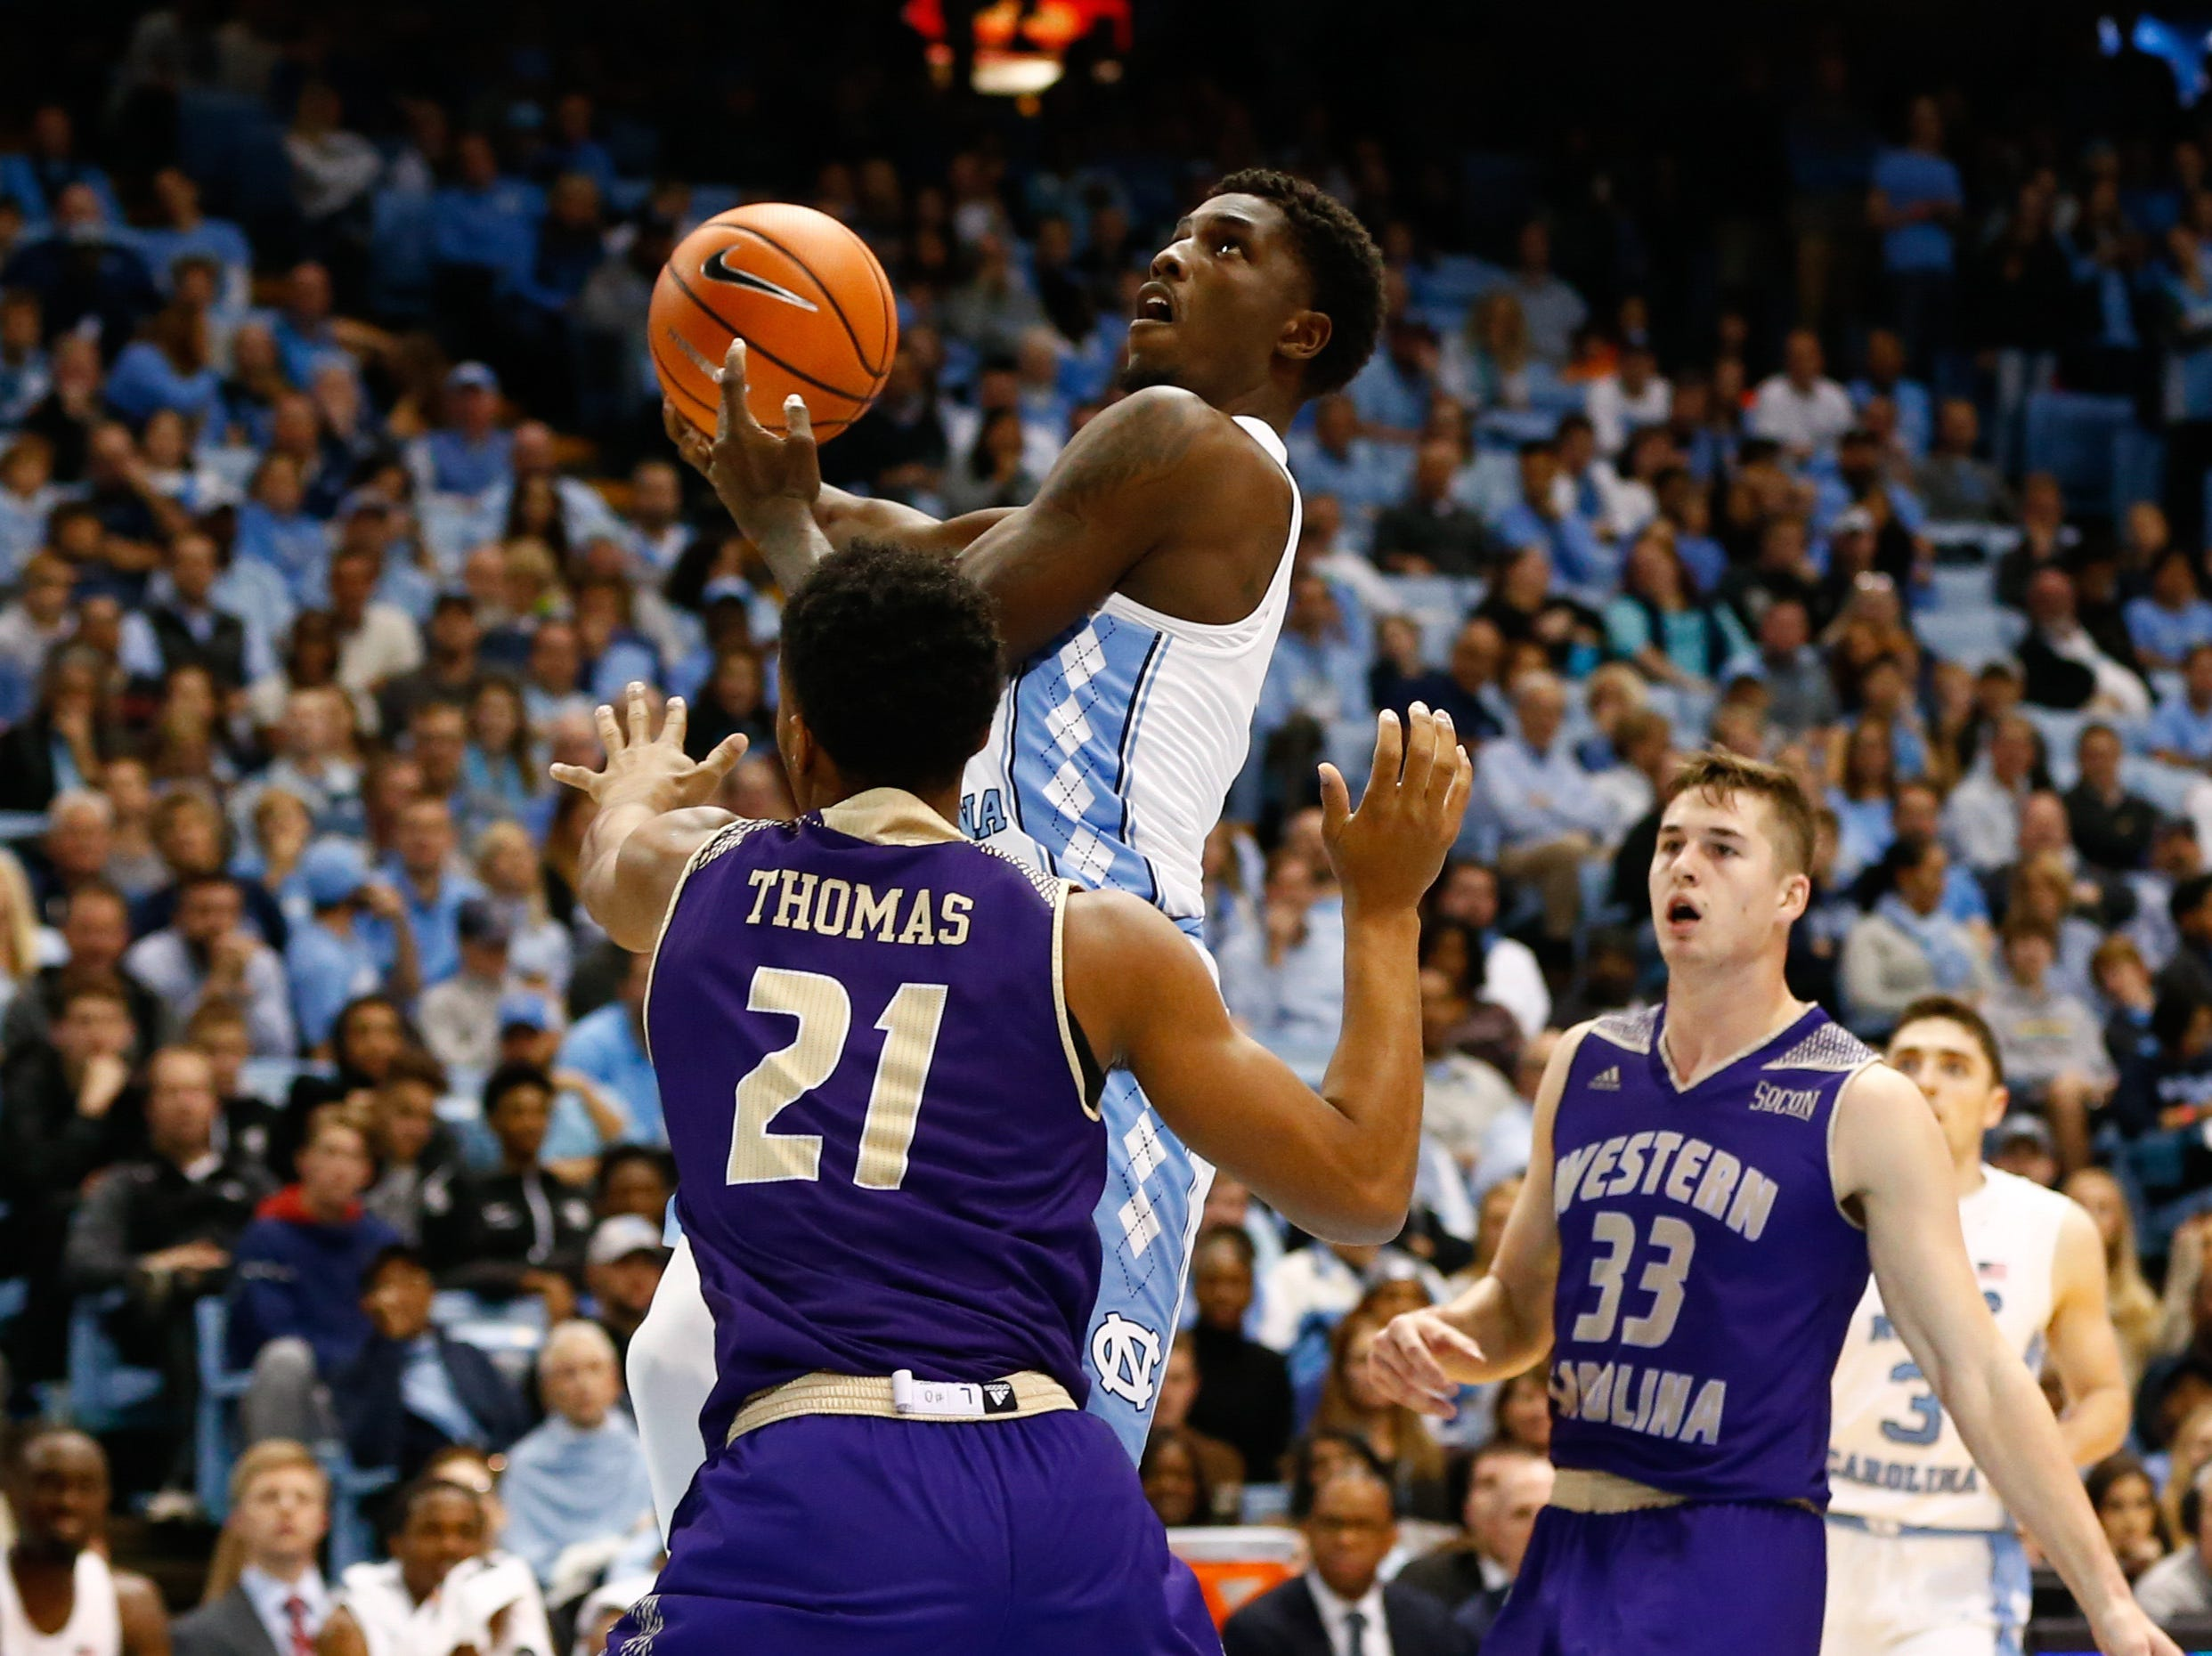 Dec 6, 2017; Chapel Hill, NC, USA; North Carolina Tar Heels guard Jalek Felton (5) goes up for a shot against Western Carolina Catamounts guard Marcus Thomas (21) in the second half at Dean E. Smith Center. Mandatory Credit: Jeremy Brevard-USA TODAY Sports